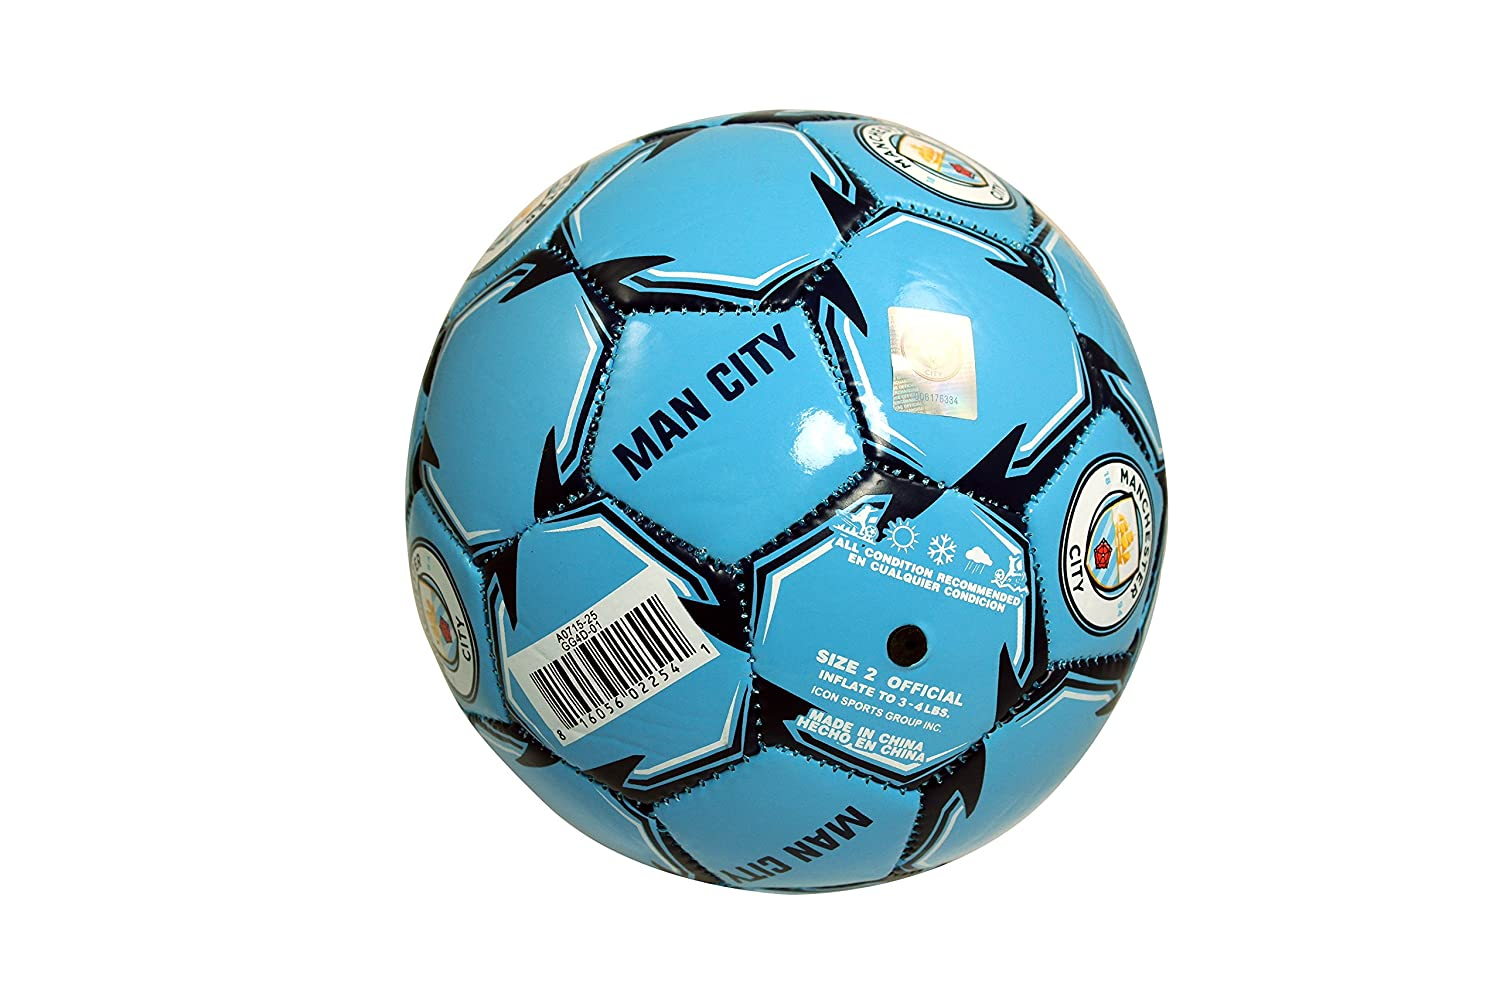 Authentic Official Licensed Soccer Ball size 2 Manchester City F.C